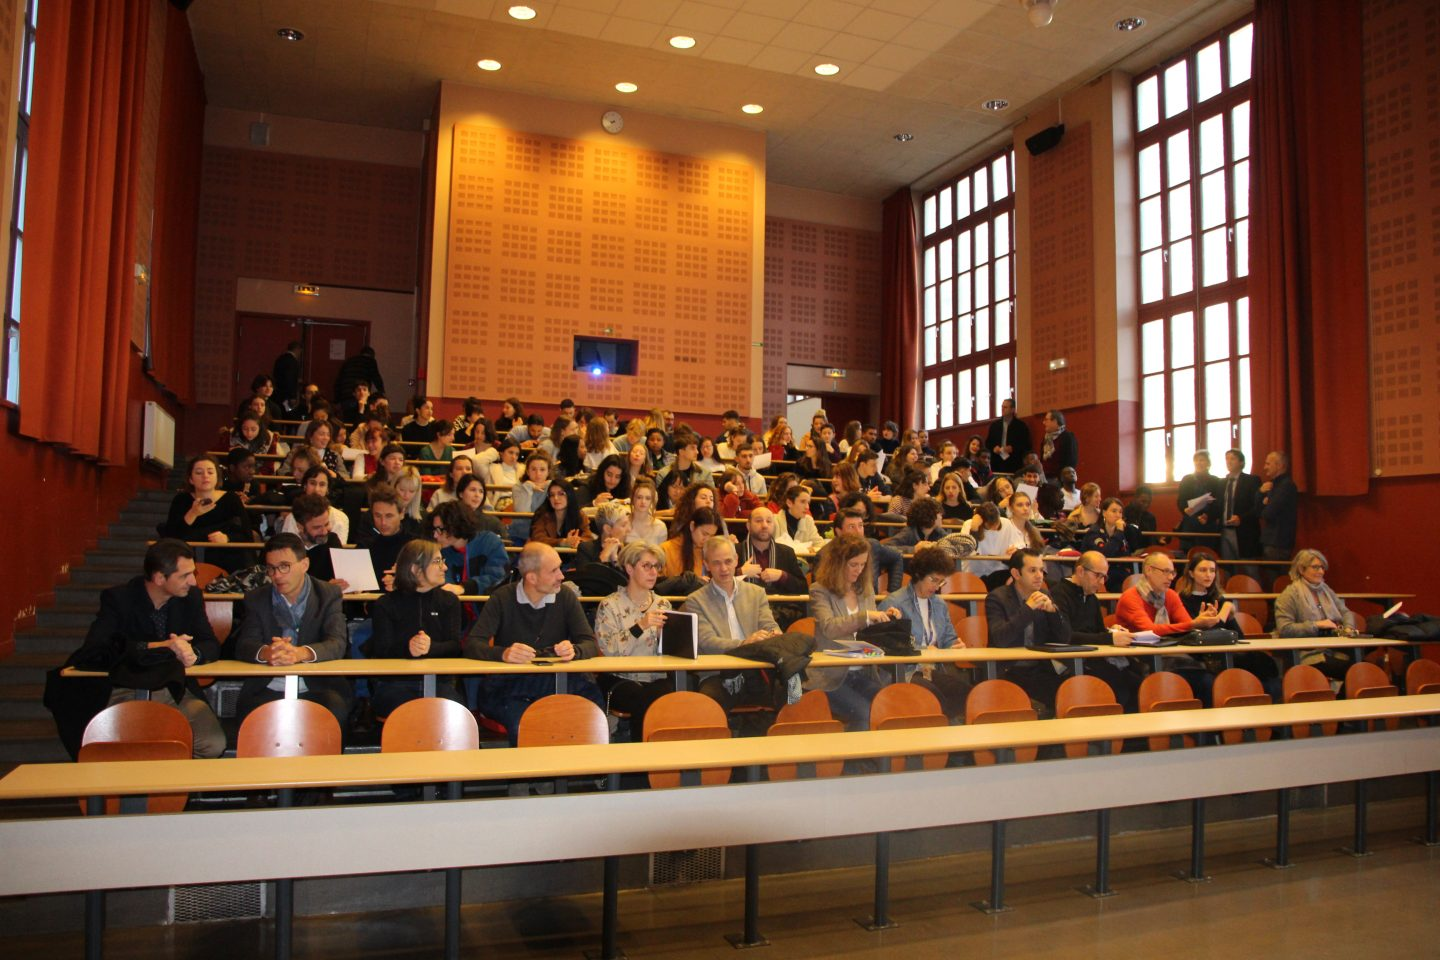 RENCONTRE ÉTUDIANTS – INDUSTRIELS DU 22 NOVEMBRE 2019